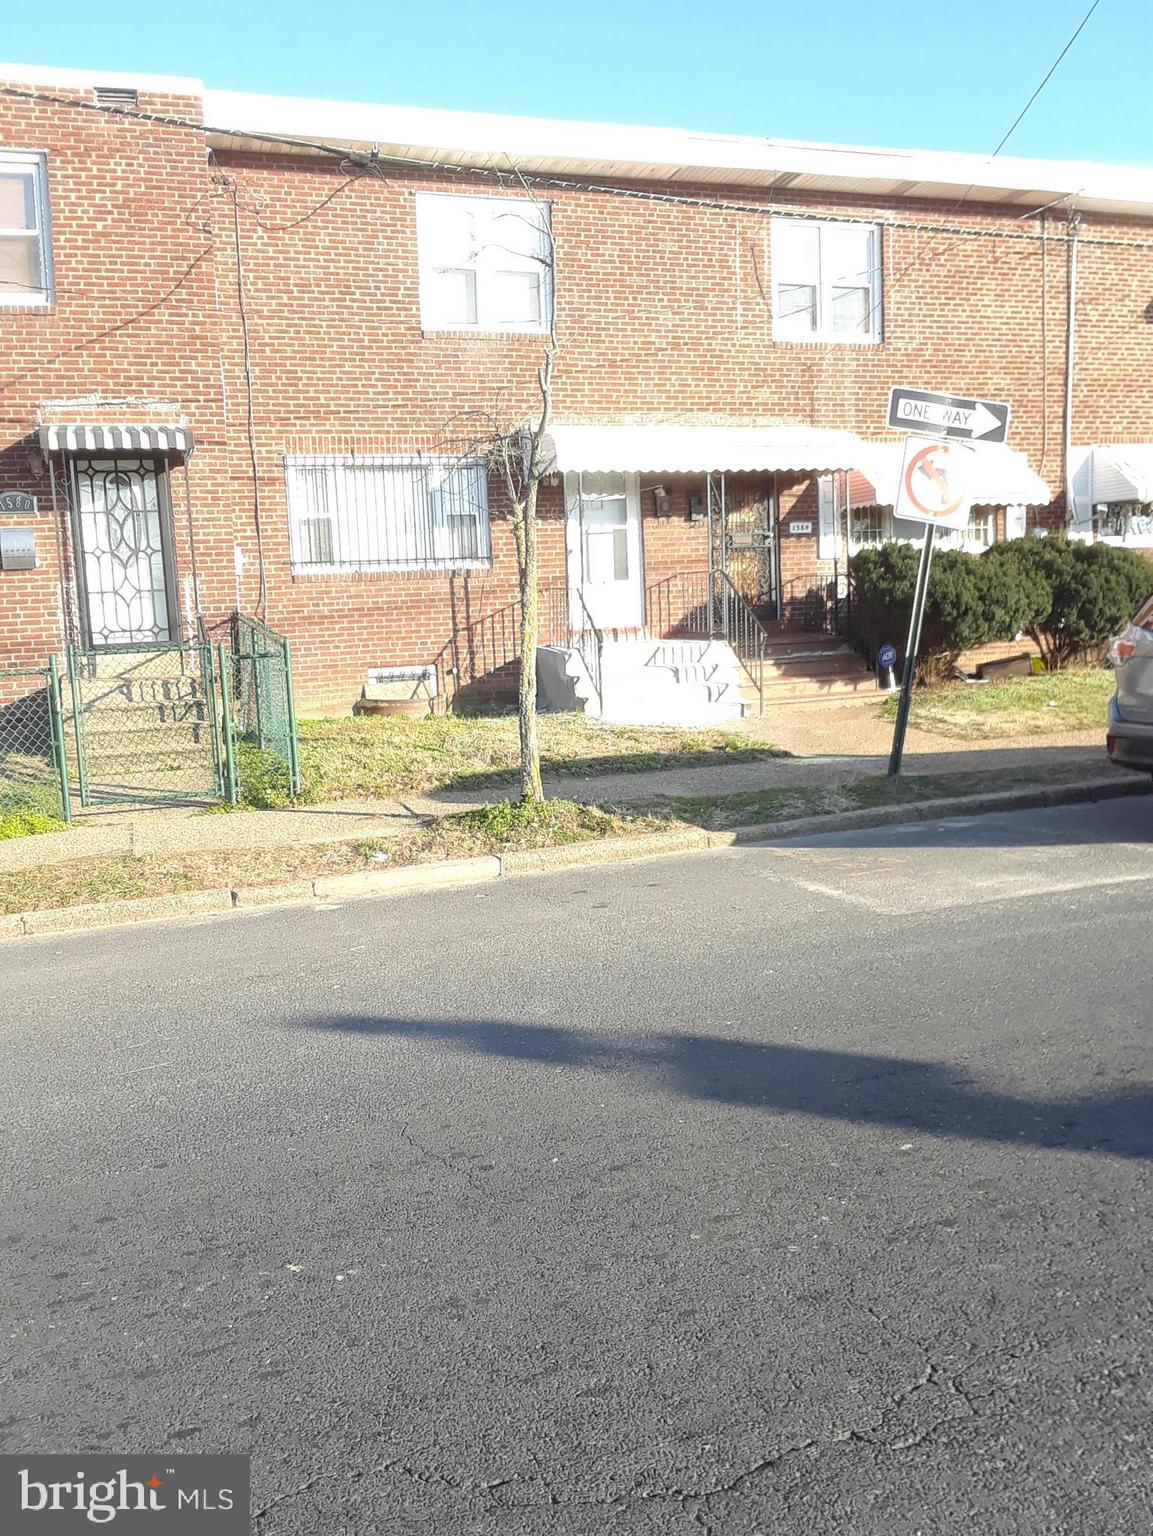 1582 S S 9TH STREET, CAMDEN, NJ 08104